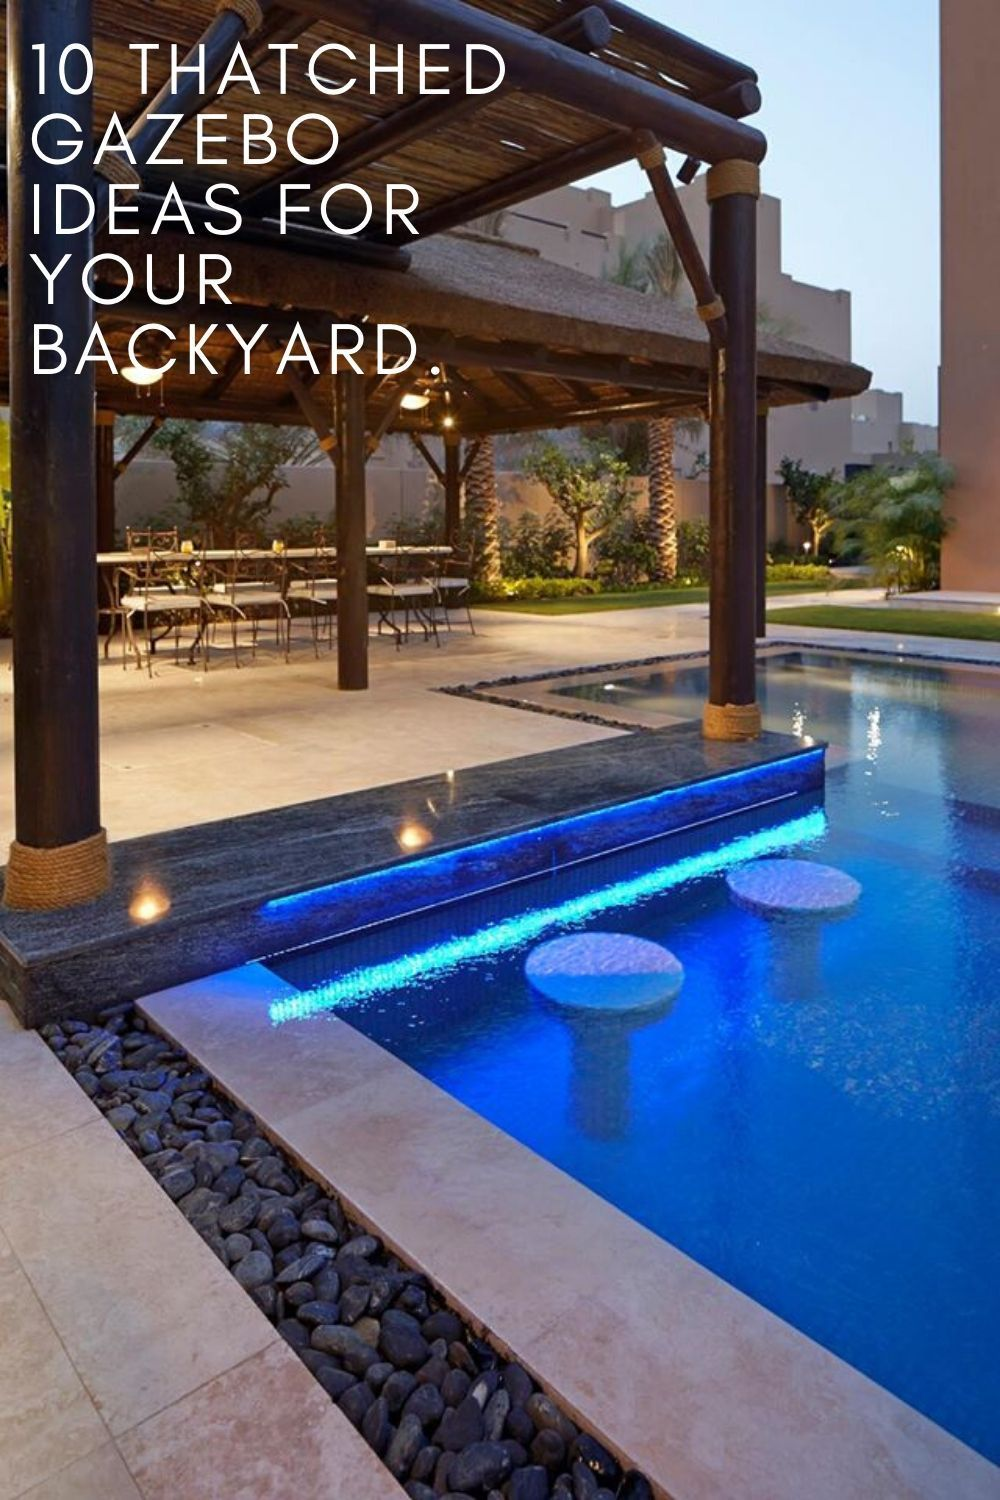 10 Thatched Gazebo Ideas For Your Backyard Cape Reed International Pool Bar Swimming Pool Designs Pool Designs